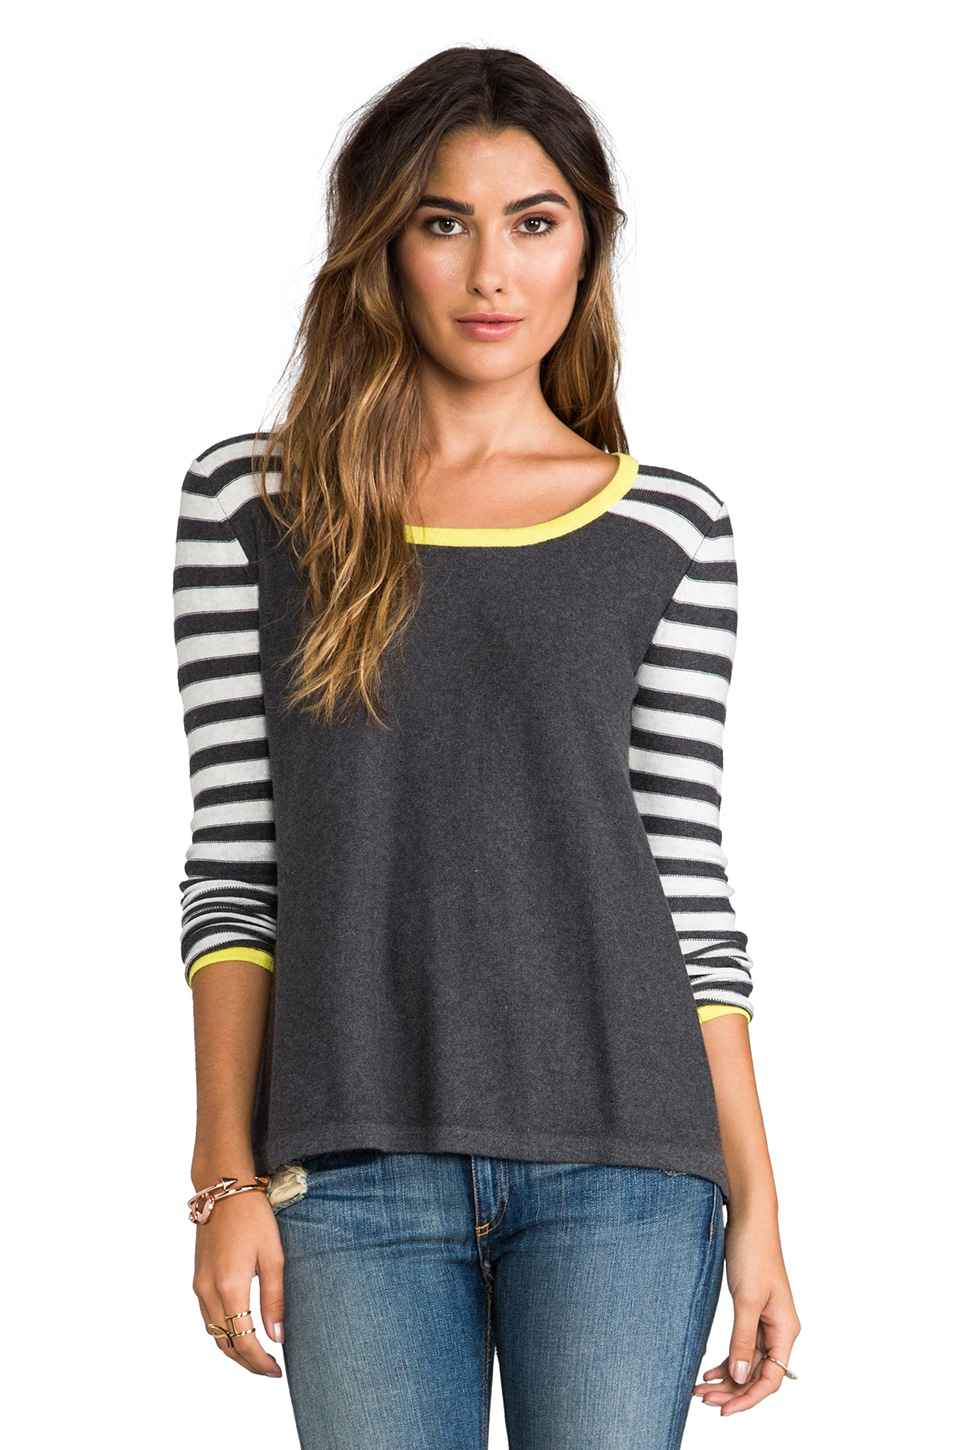 Central Park West Astor Court Striped Sweater en Charcoal